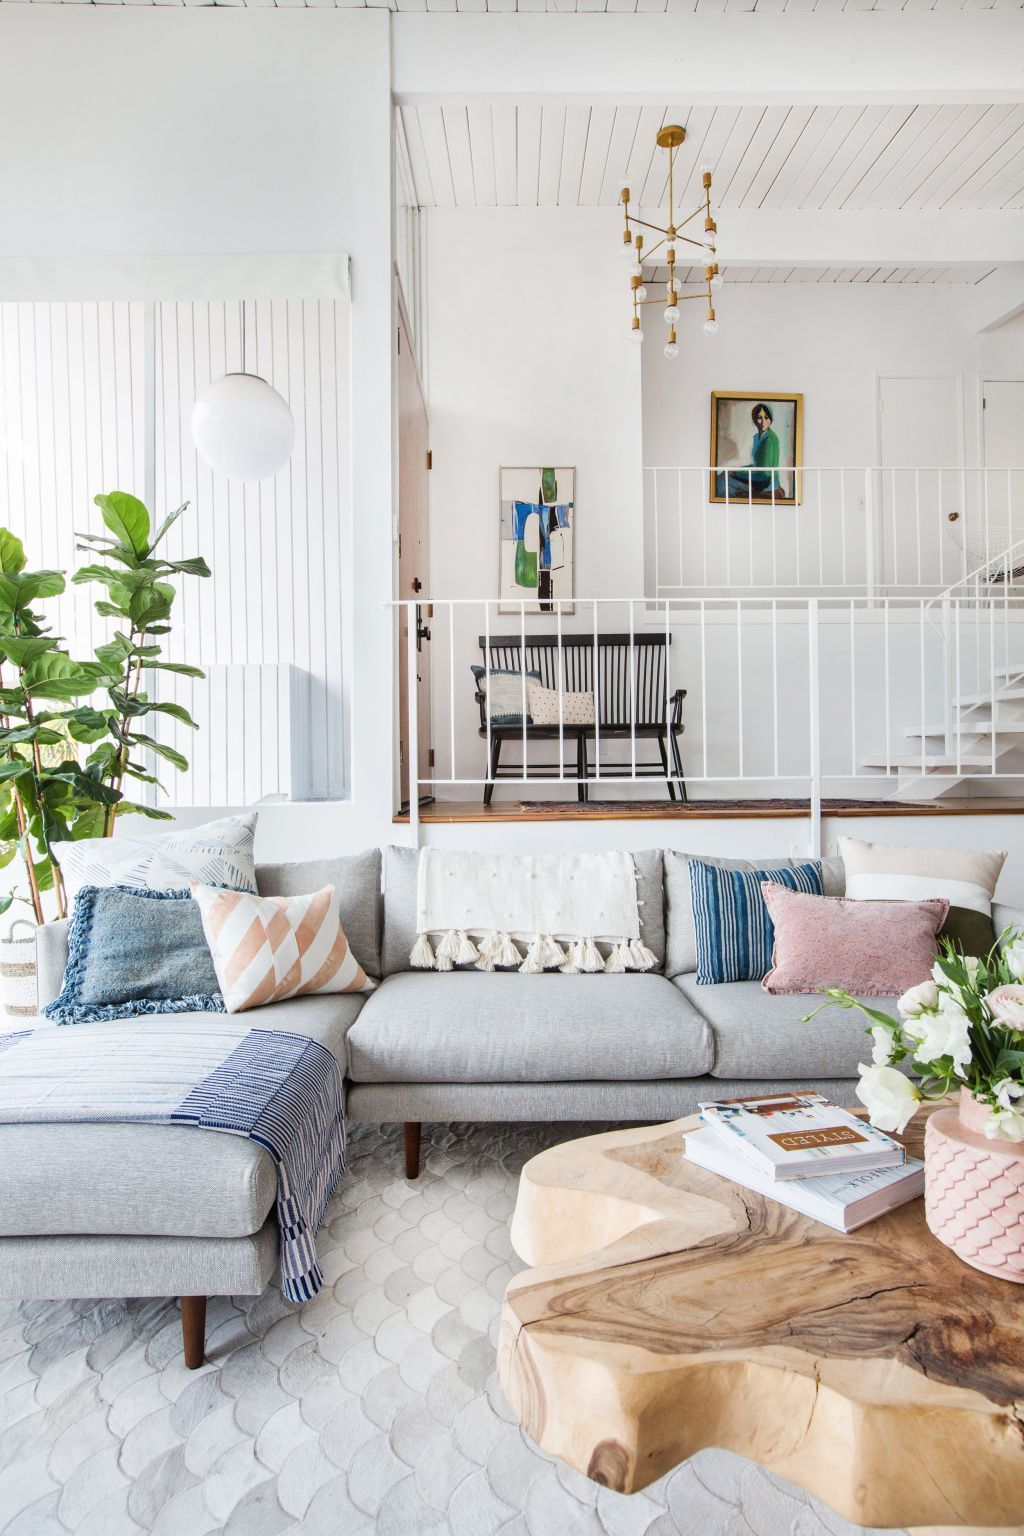 How we styled our living room to sell   Modern home pictures ...